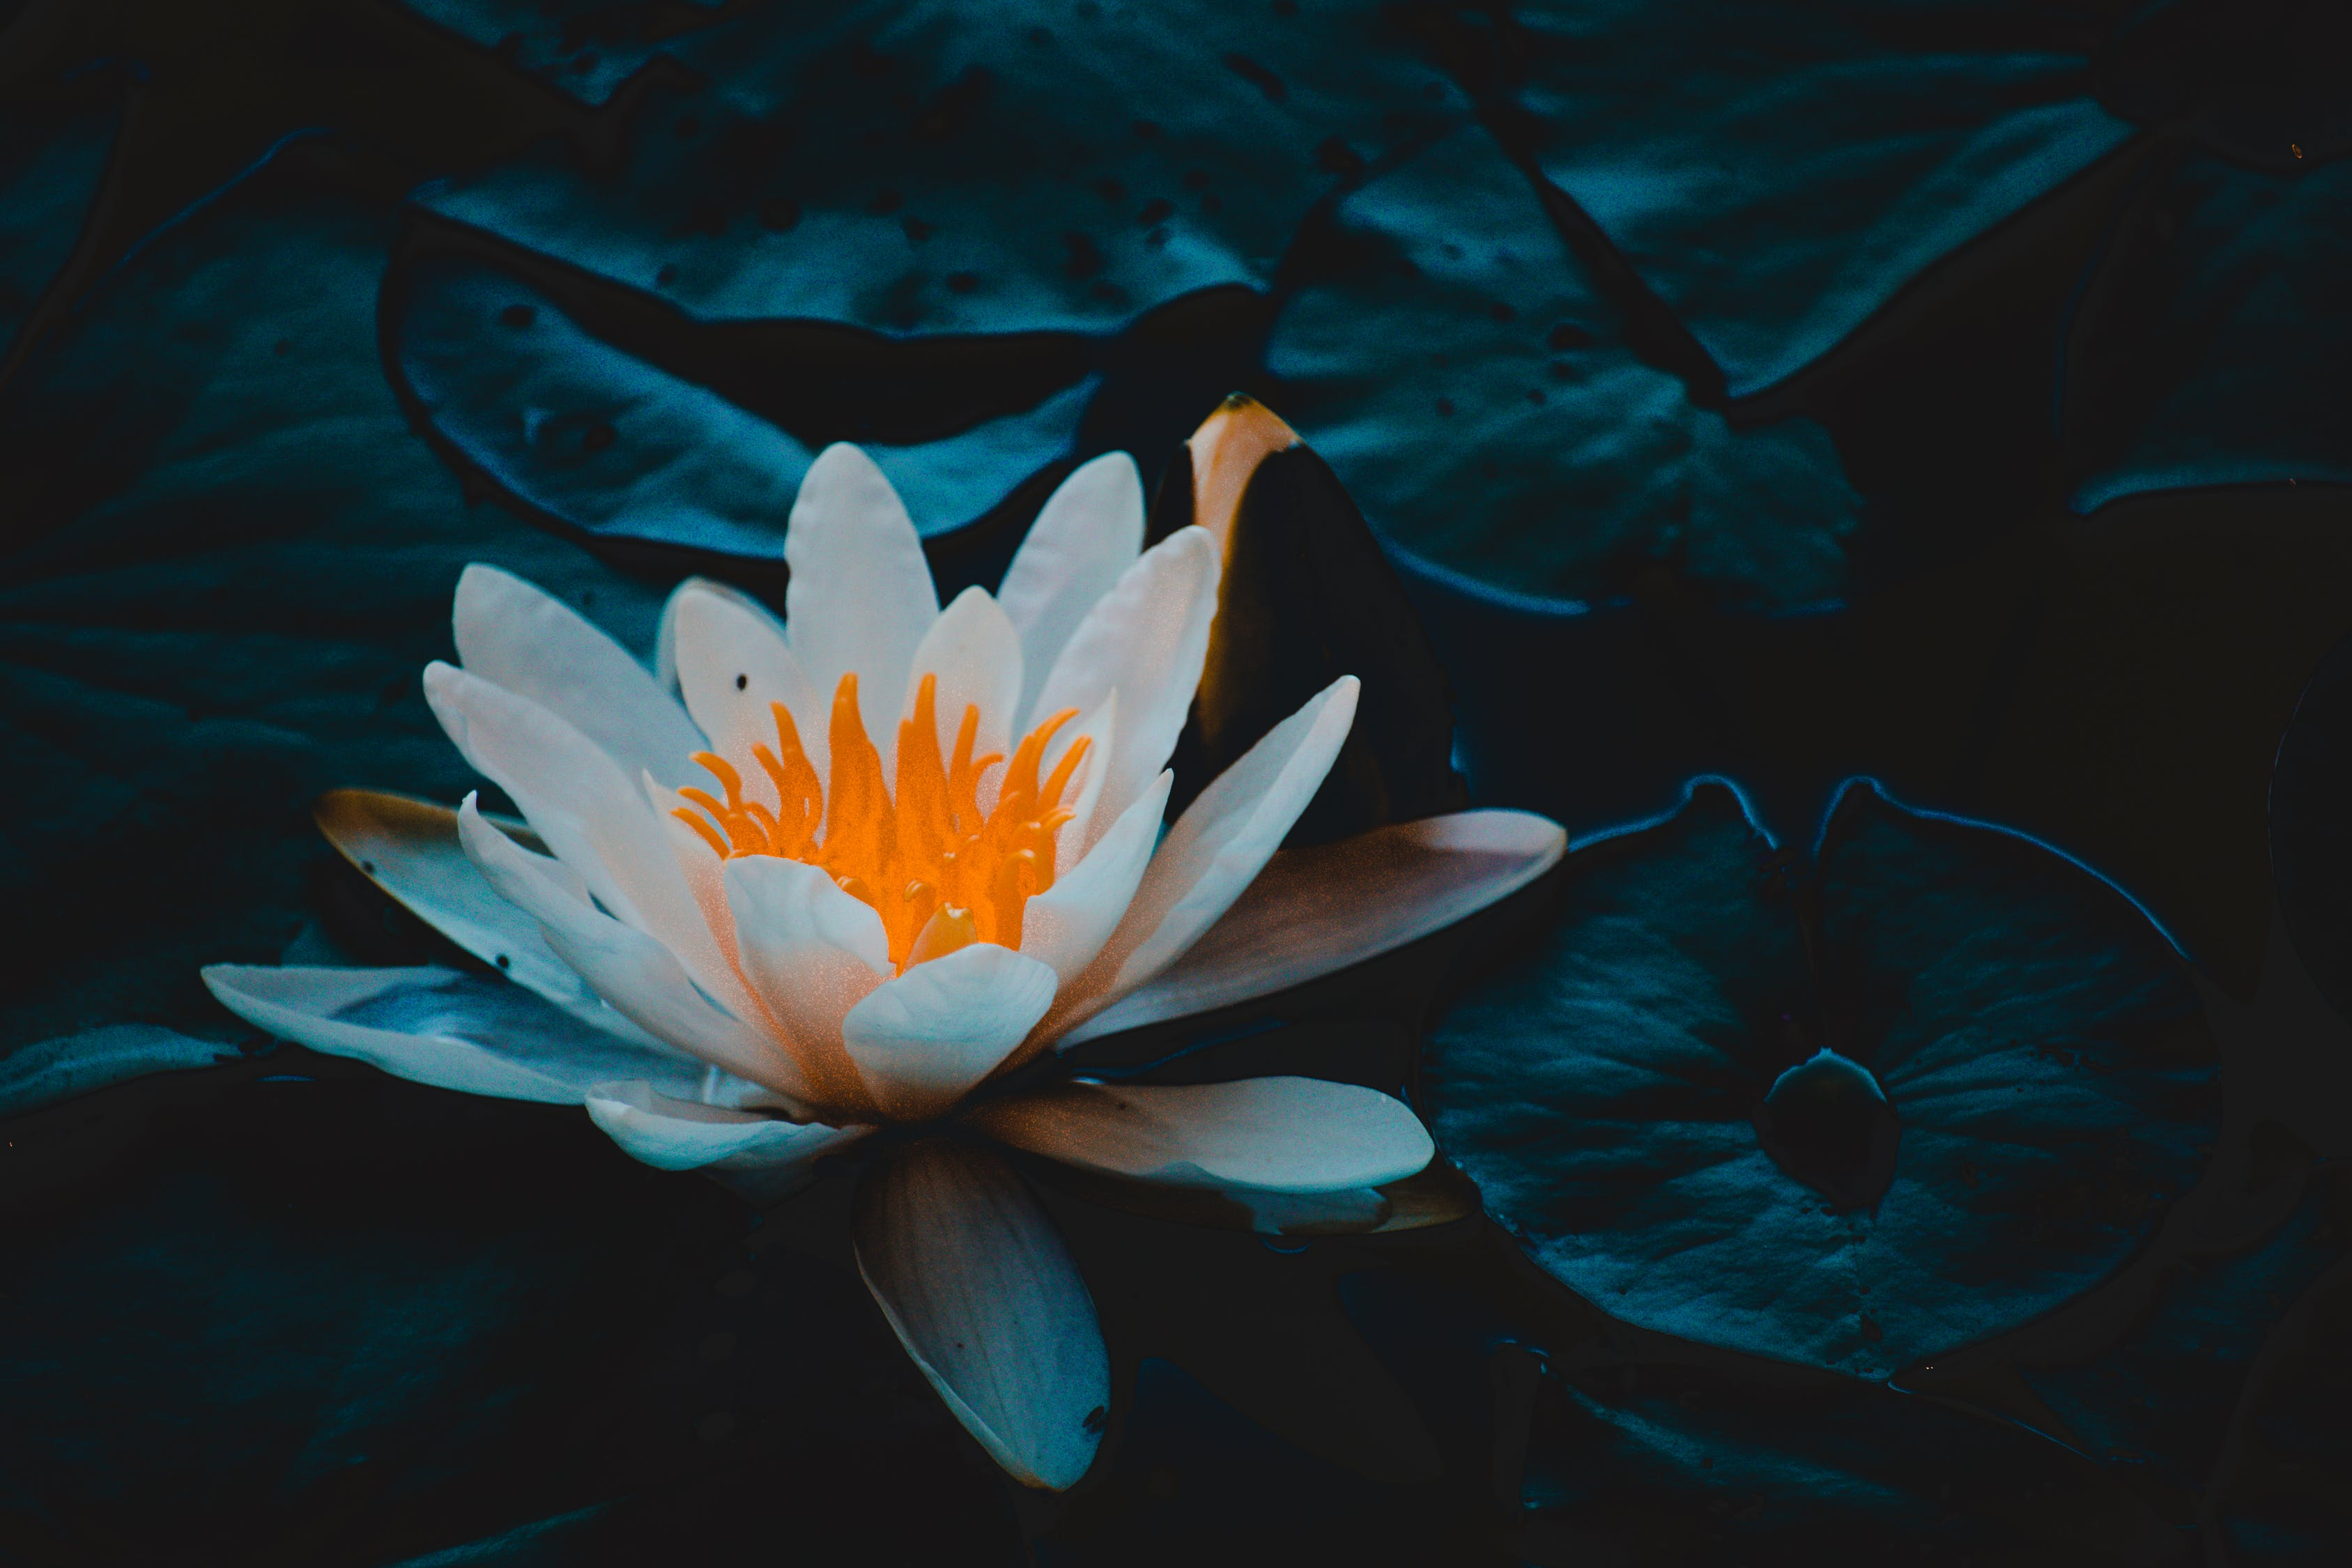 Close-up Photography of Water Lily